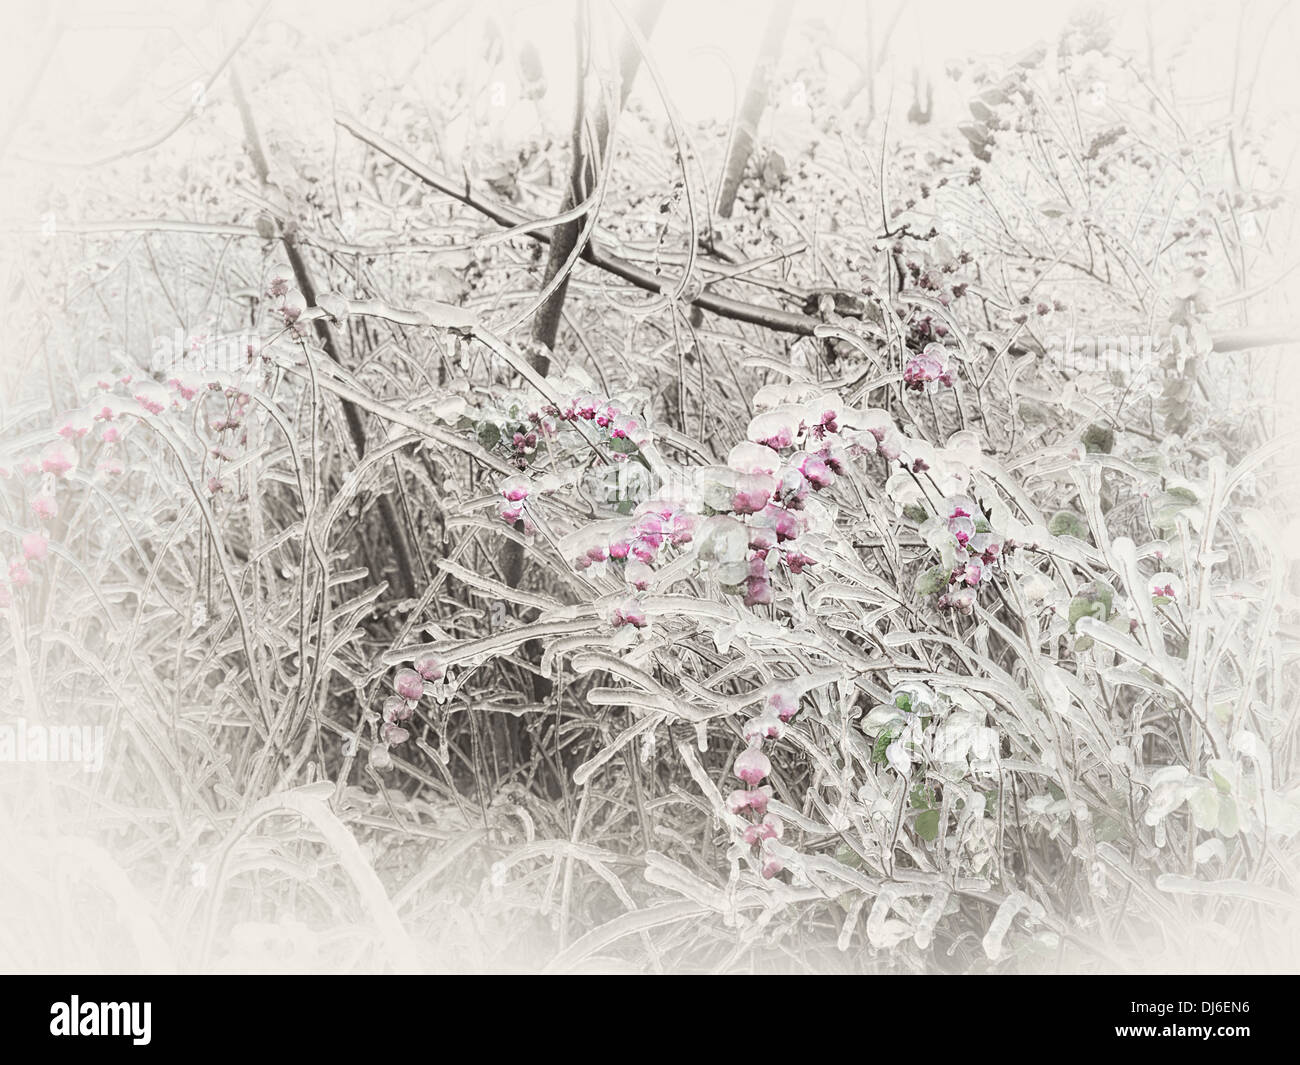 Frozen, ice glazed branches and pink berries of a shrub. Abstract sepia toned fall nature scenery. - Stock Image